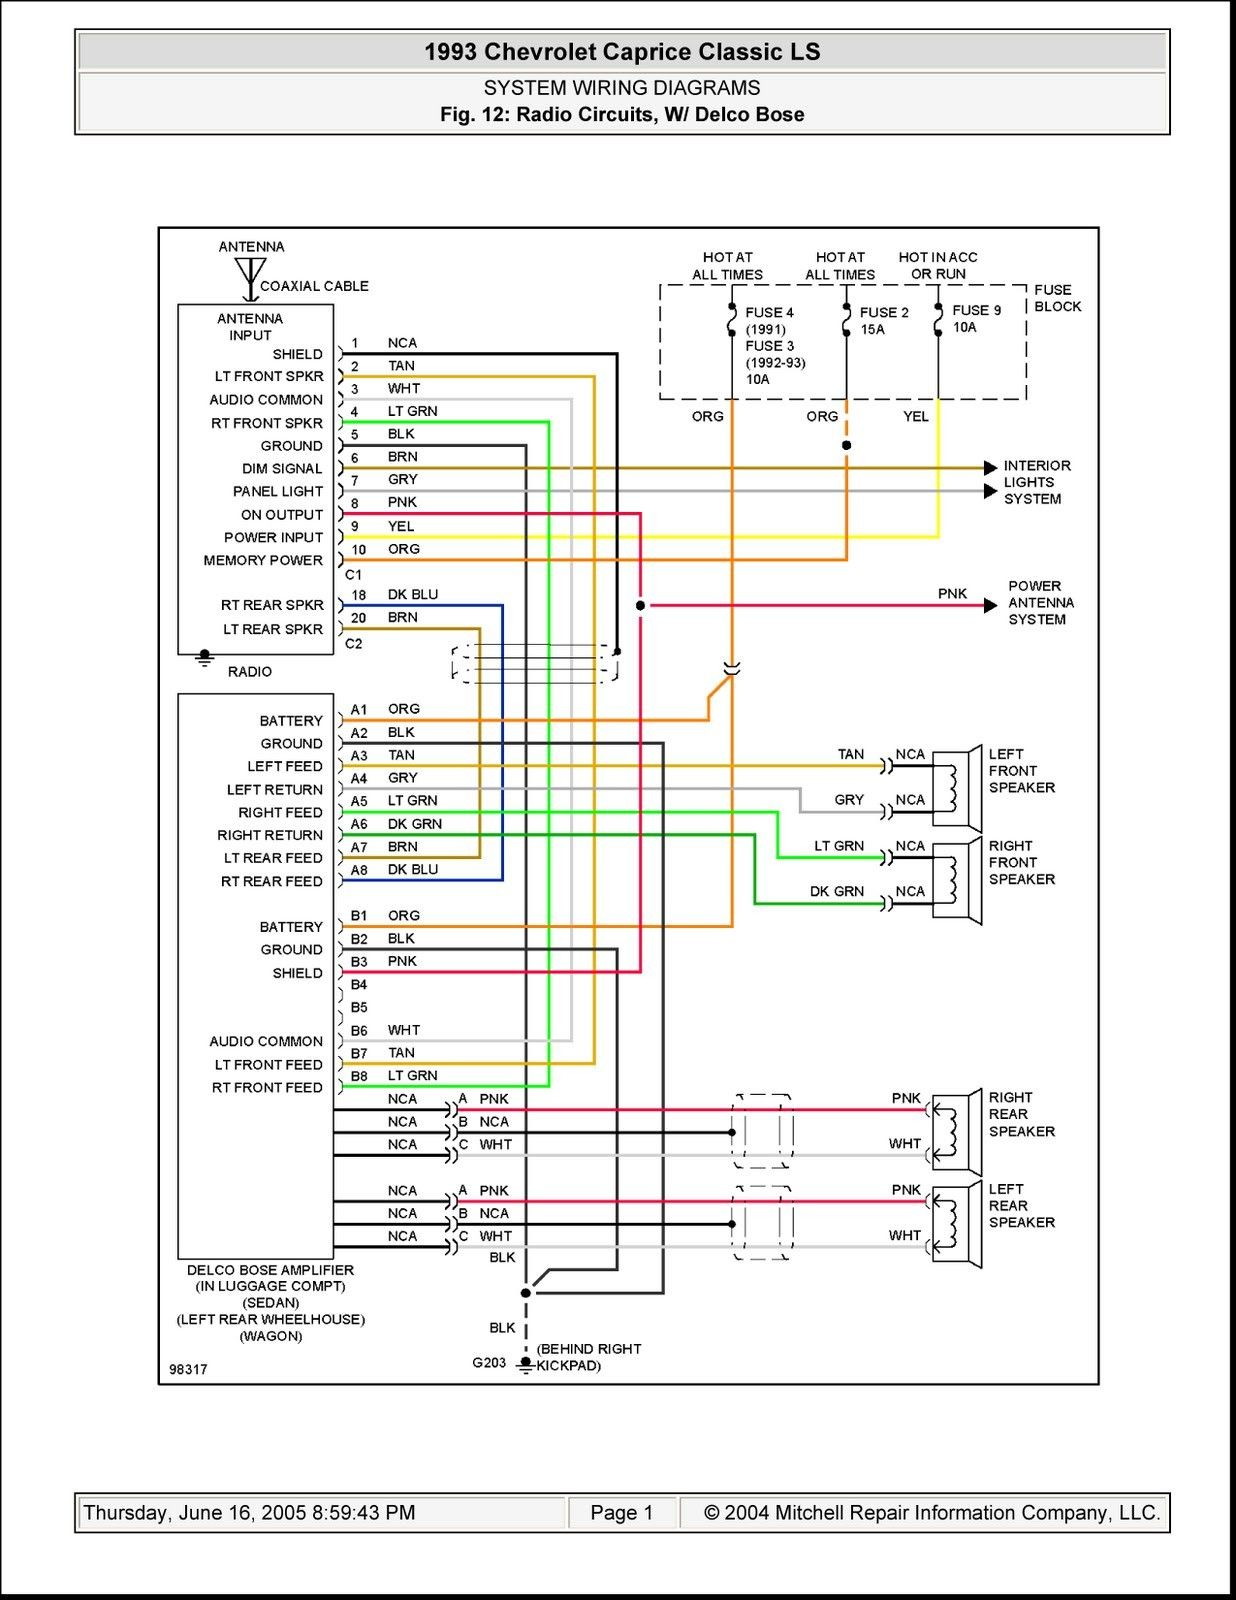 New Delco Amplifier Wiring Diagram #diagram #diagramtemplate ... on bose sub diagram, bose auto radio repair, speakers wiring diagram, 1995 camaro radio wiring diagram, fog lights wiring diagram, bose speakers diagram, bose dvd player diagram, 2000 gmc radio wiring diagram, bose car radio wiring schematic, parts of a ship diagram, bose stereo wiring, sailboat diagram, bose wave radio schematic diagram, boat diagram, factory amp bypass diagram, 2004 yukon wiring diagram, headlights wiring diagram, cadillac deville radio wiring diagram, cd player wiring diagram, gm stereo wiring diagram,